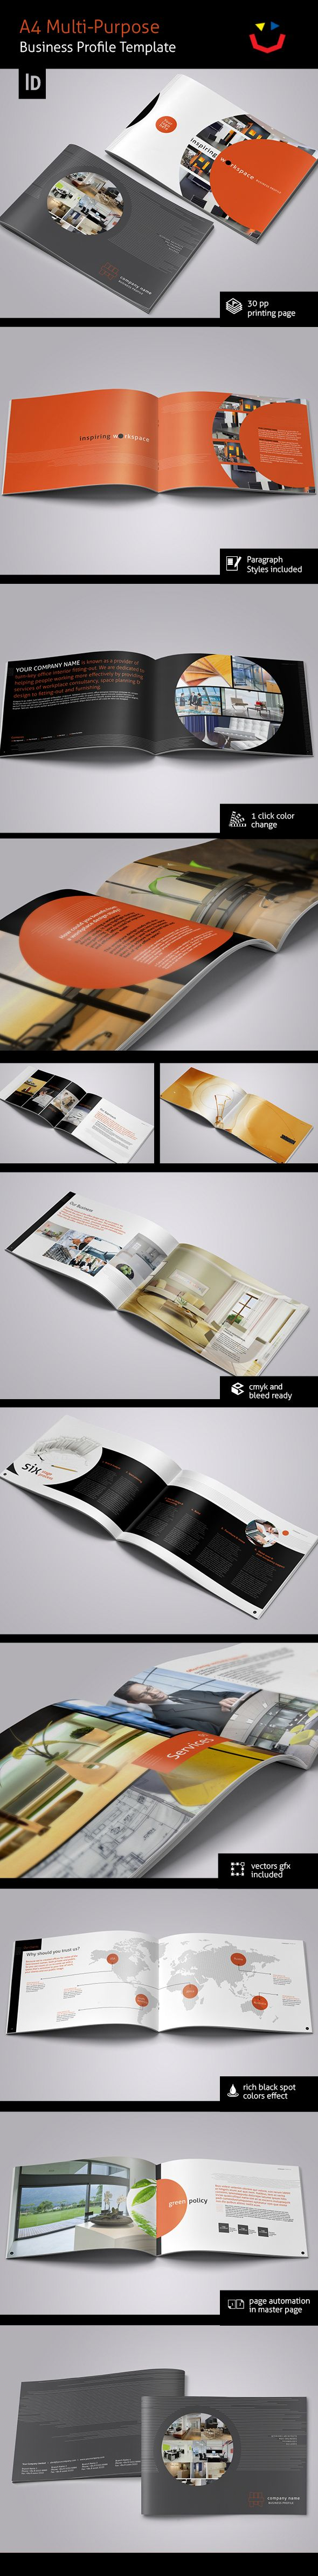 Interior Design Brochure by Jet Paul, via Behance